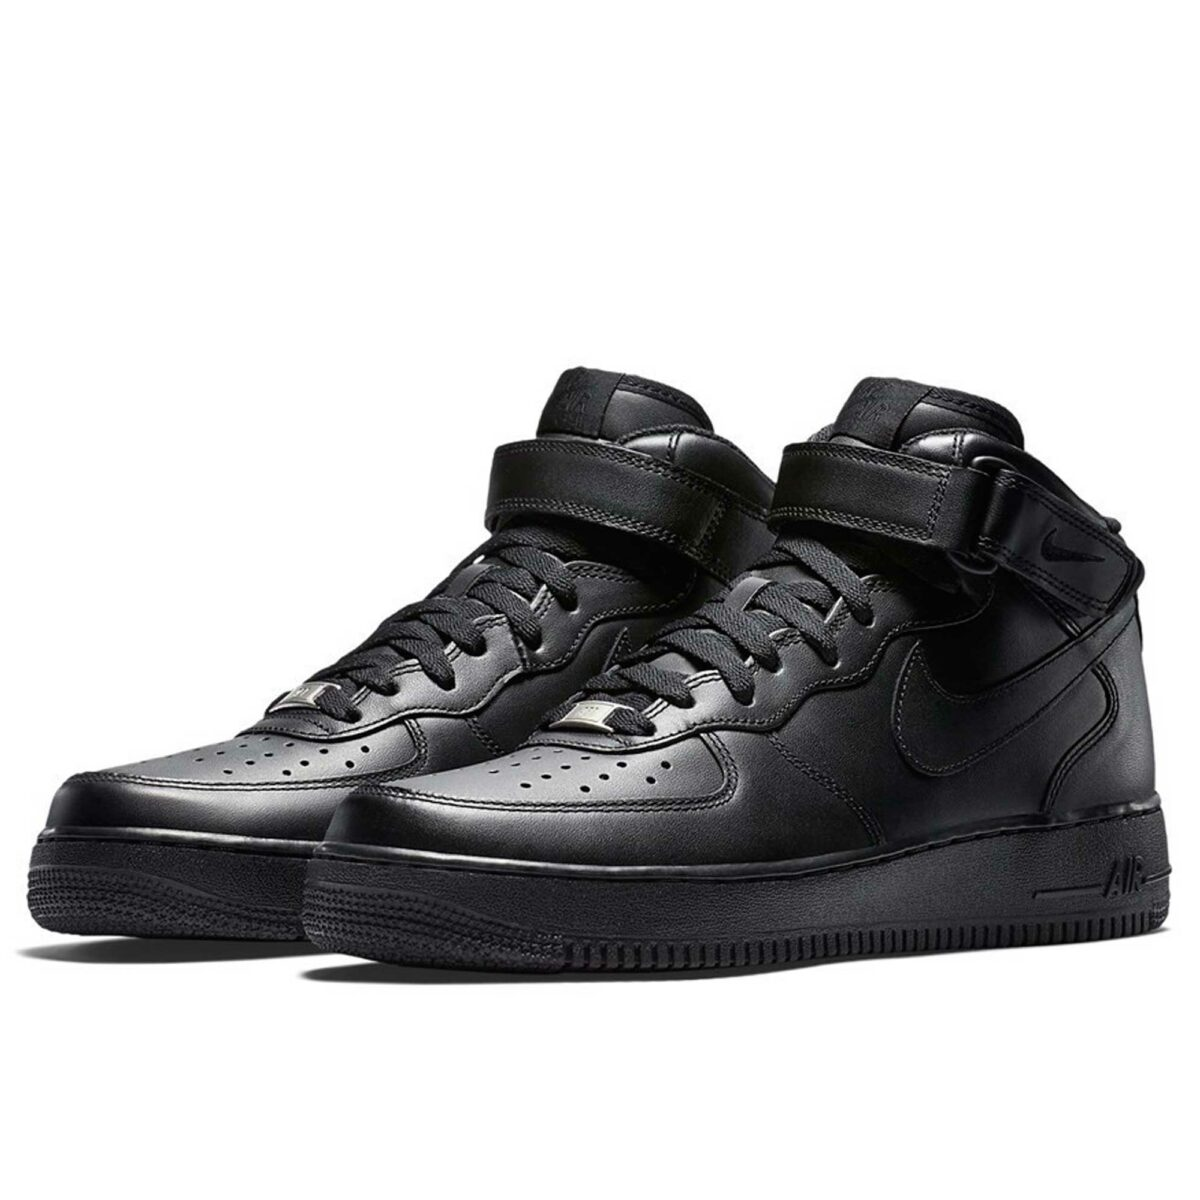 nike air force 1 mid black 315123-001 купить